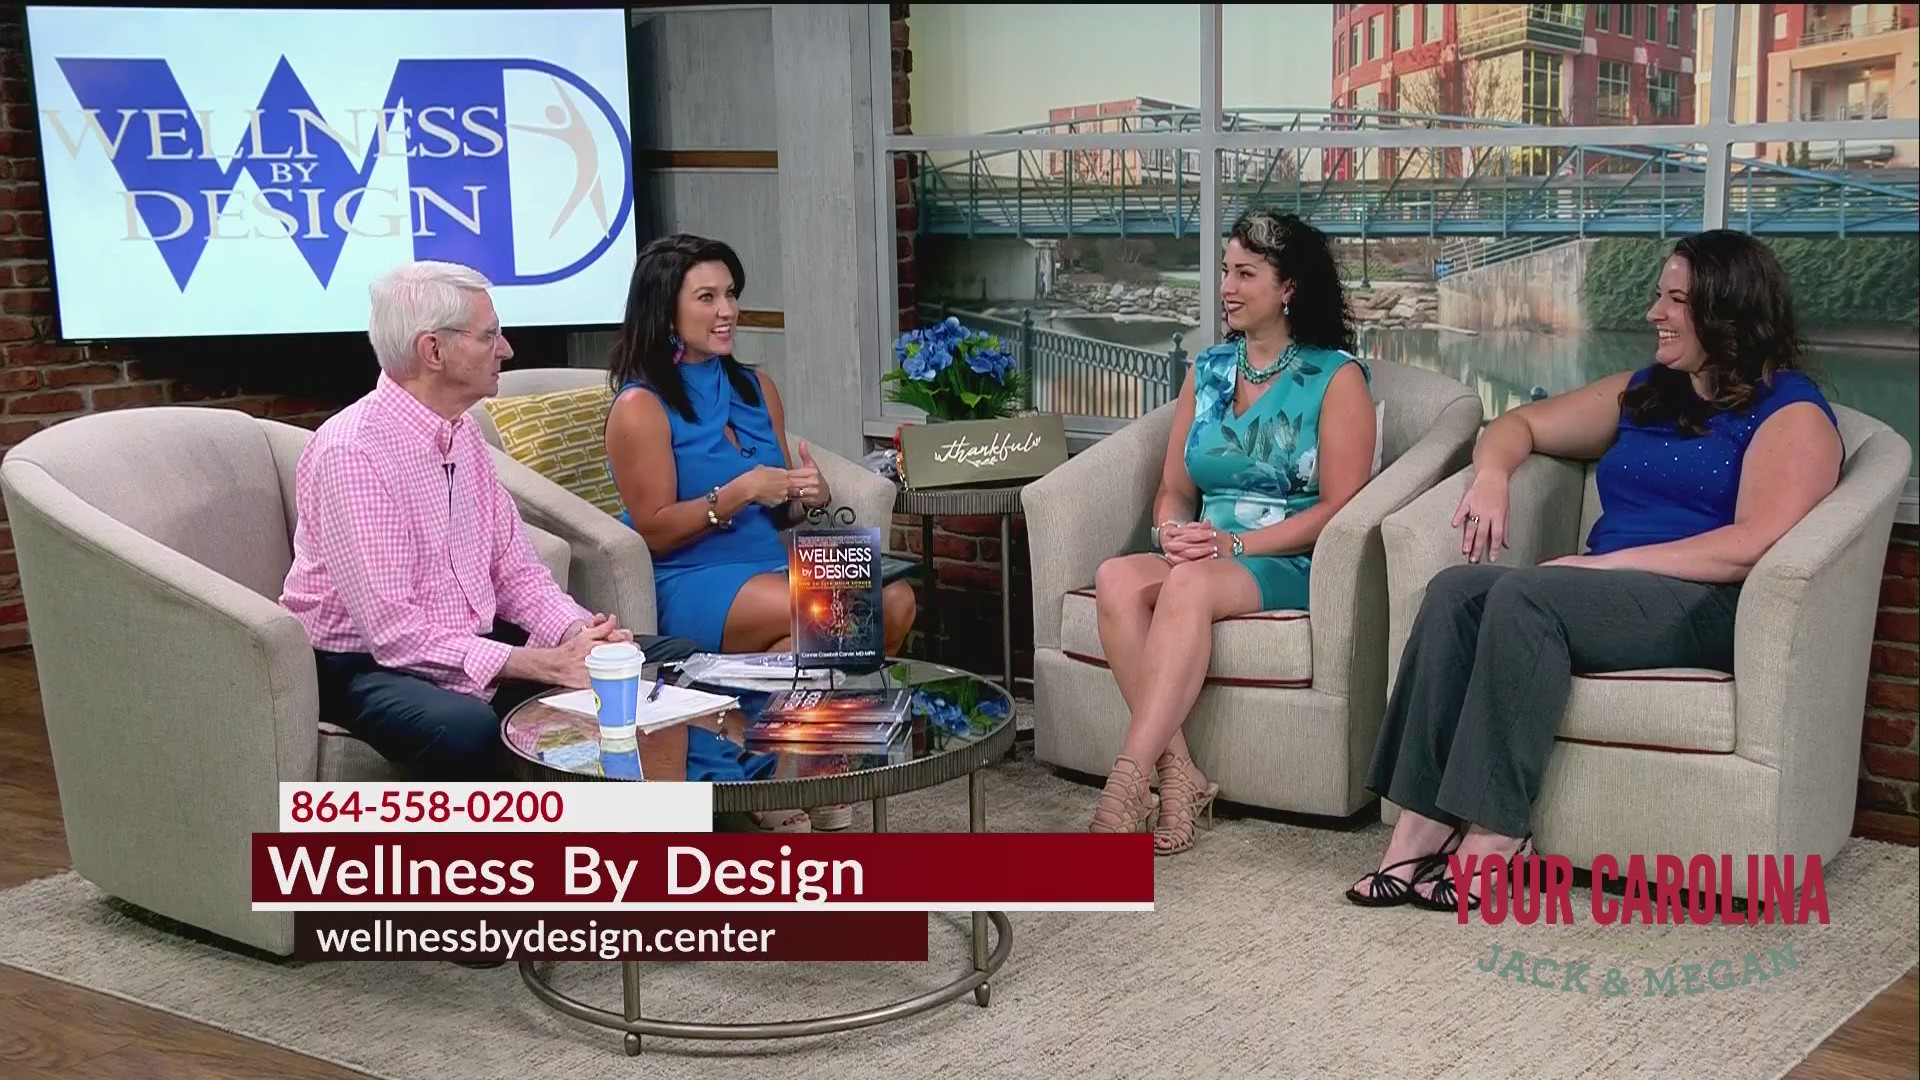 Wellness By Design - Regain Health While Losing Weight